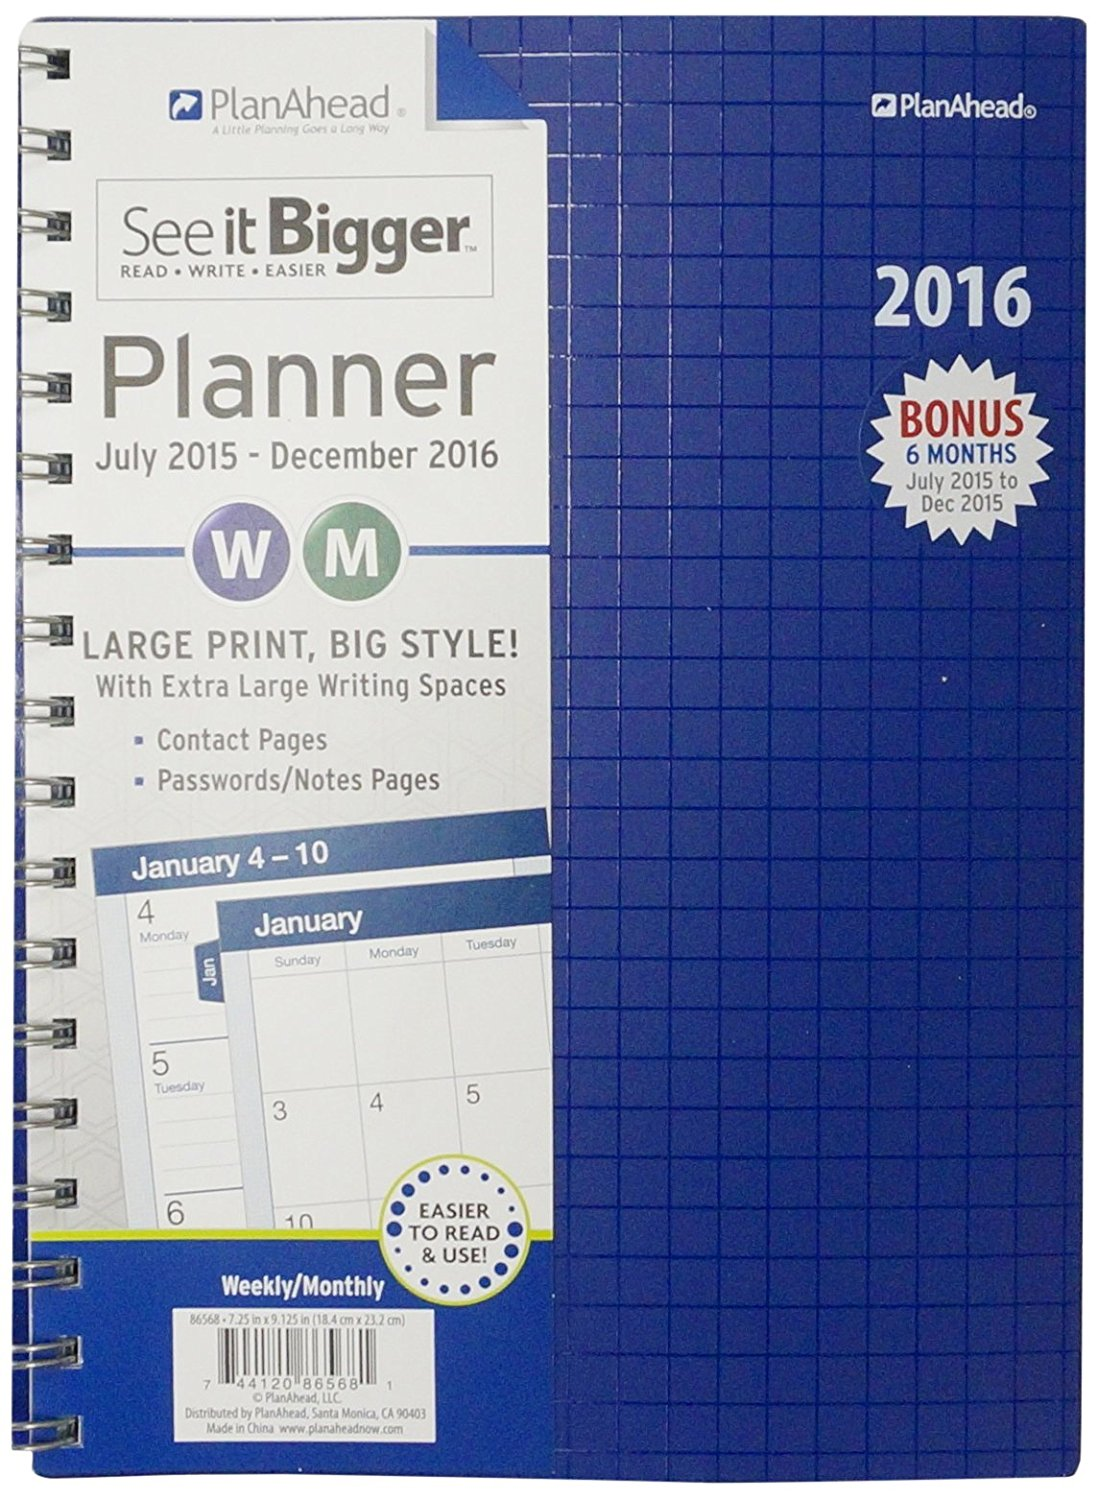 PlanAhead See It Bigger 18 Month Planner, July 2015 -December 2016, Assorted design colors (86568)